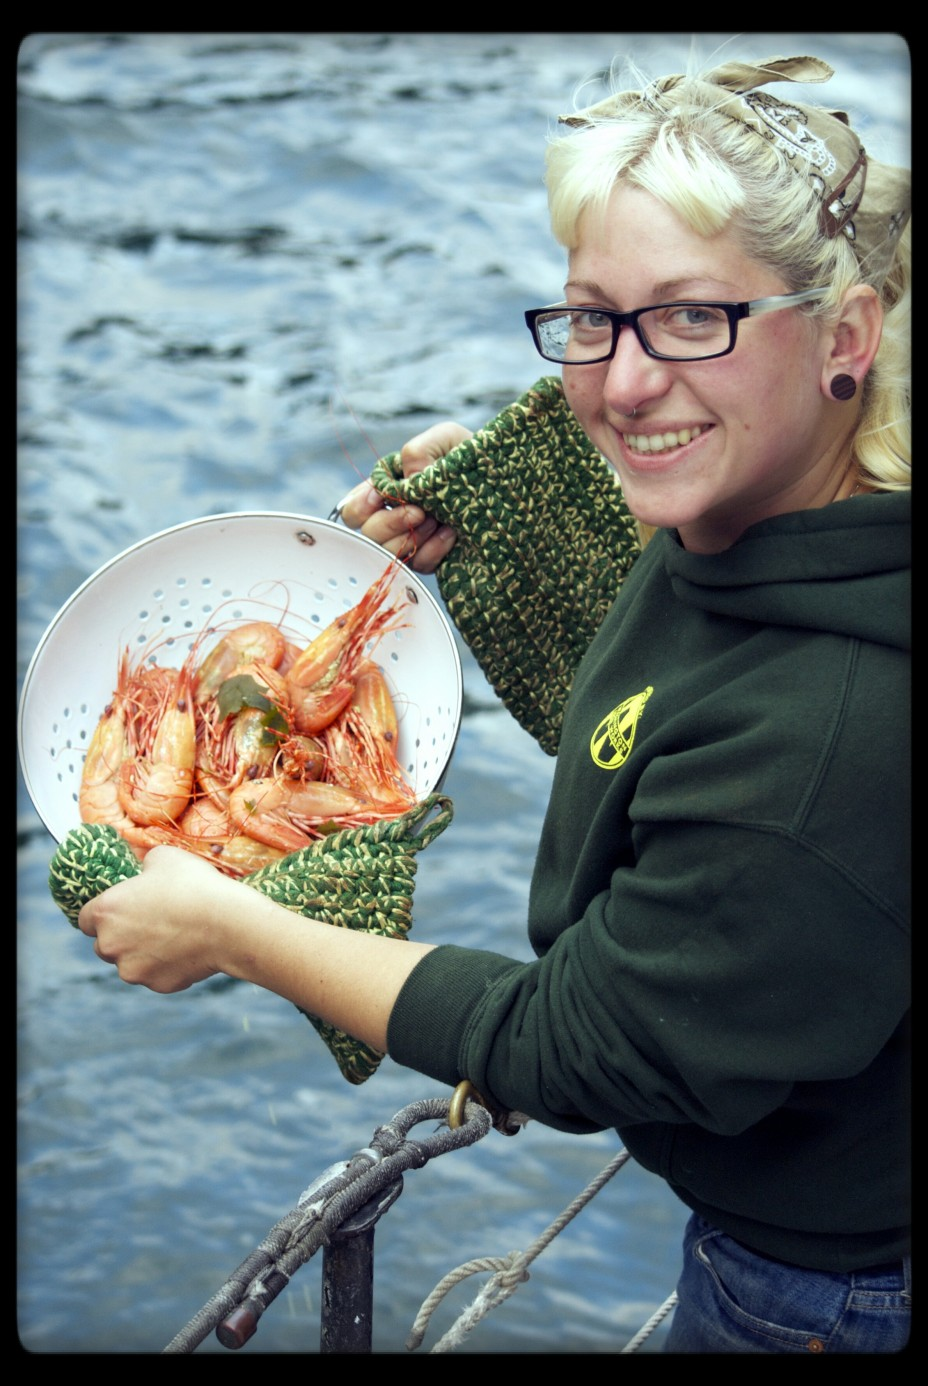 Deckhand Cass with Spot Prawns